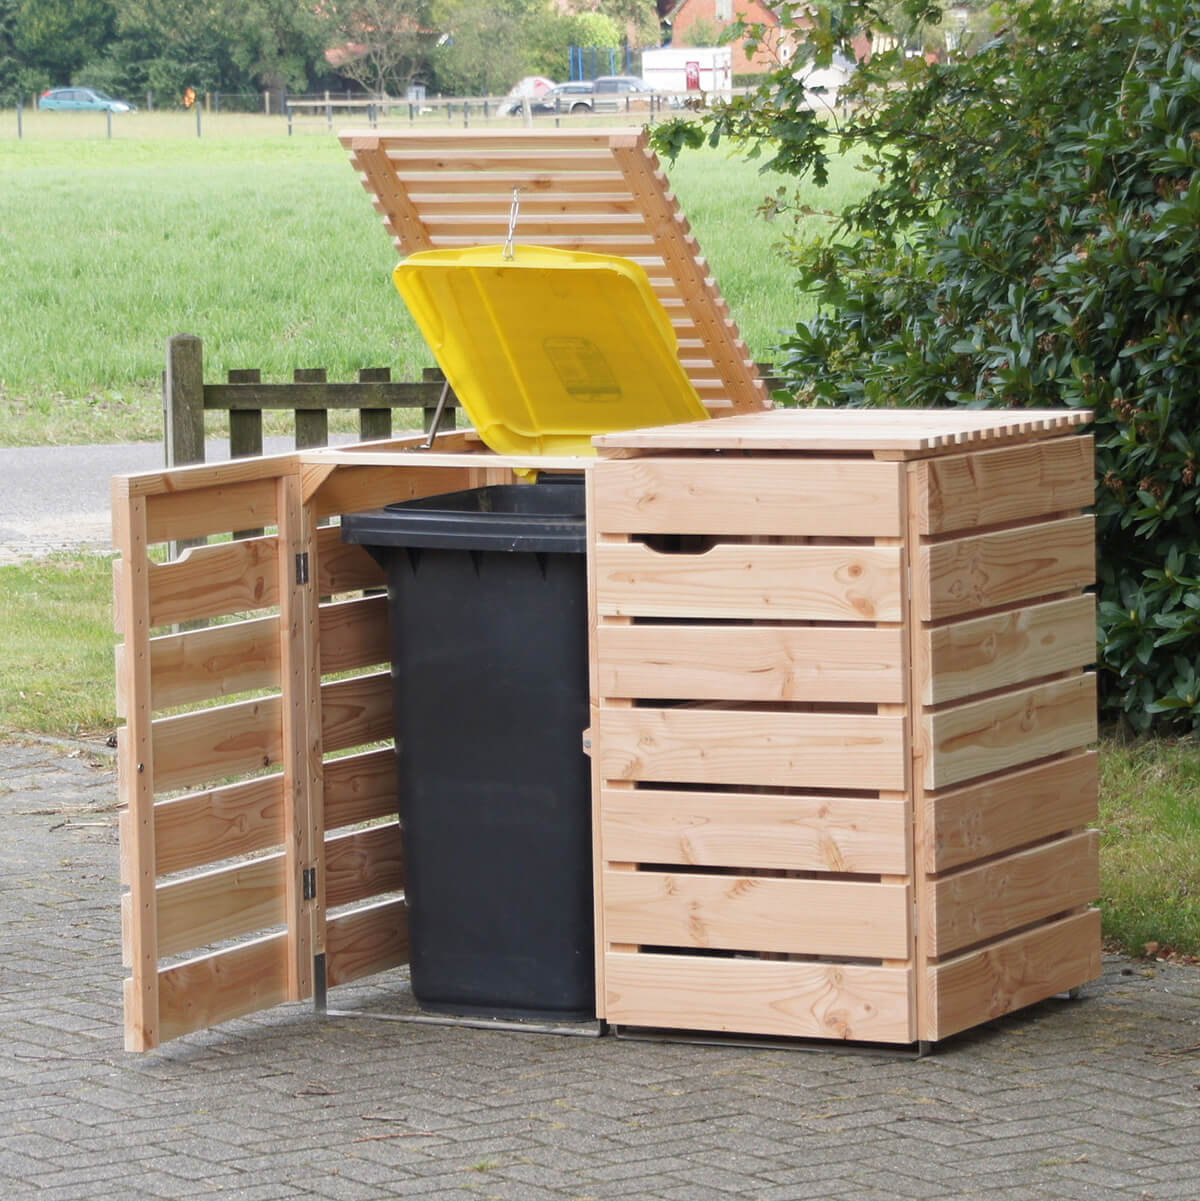 Storage to Keep Your Garbage Undercover